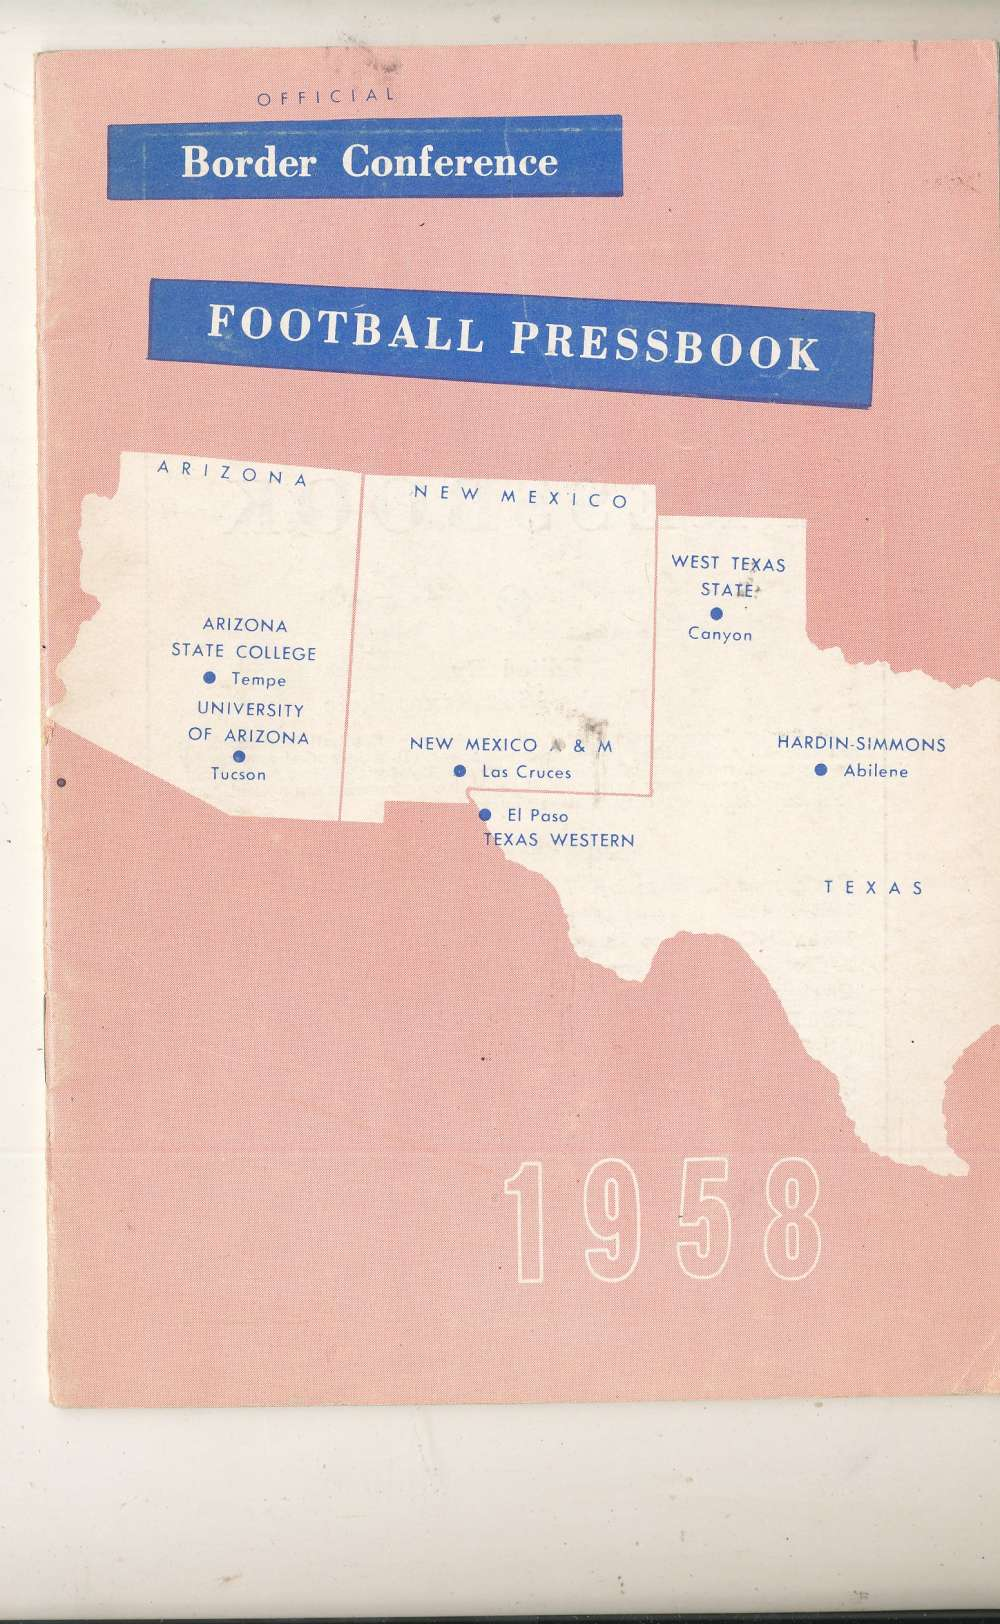 1958 Border Conference Football Pressbook Arizona Football Media Press Guide